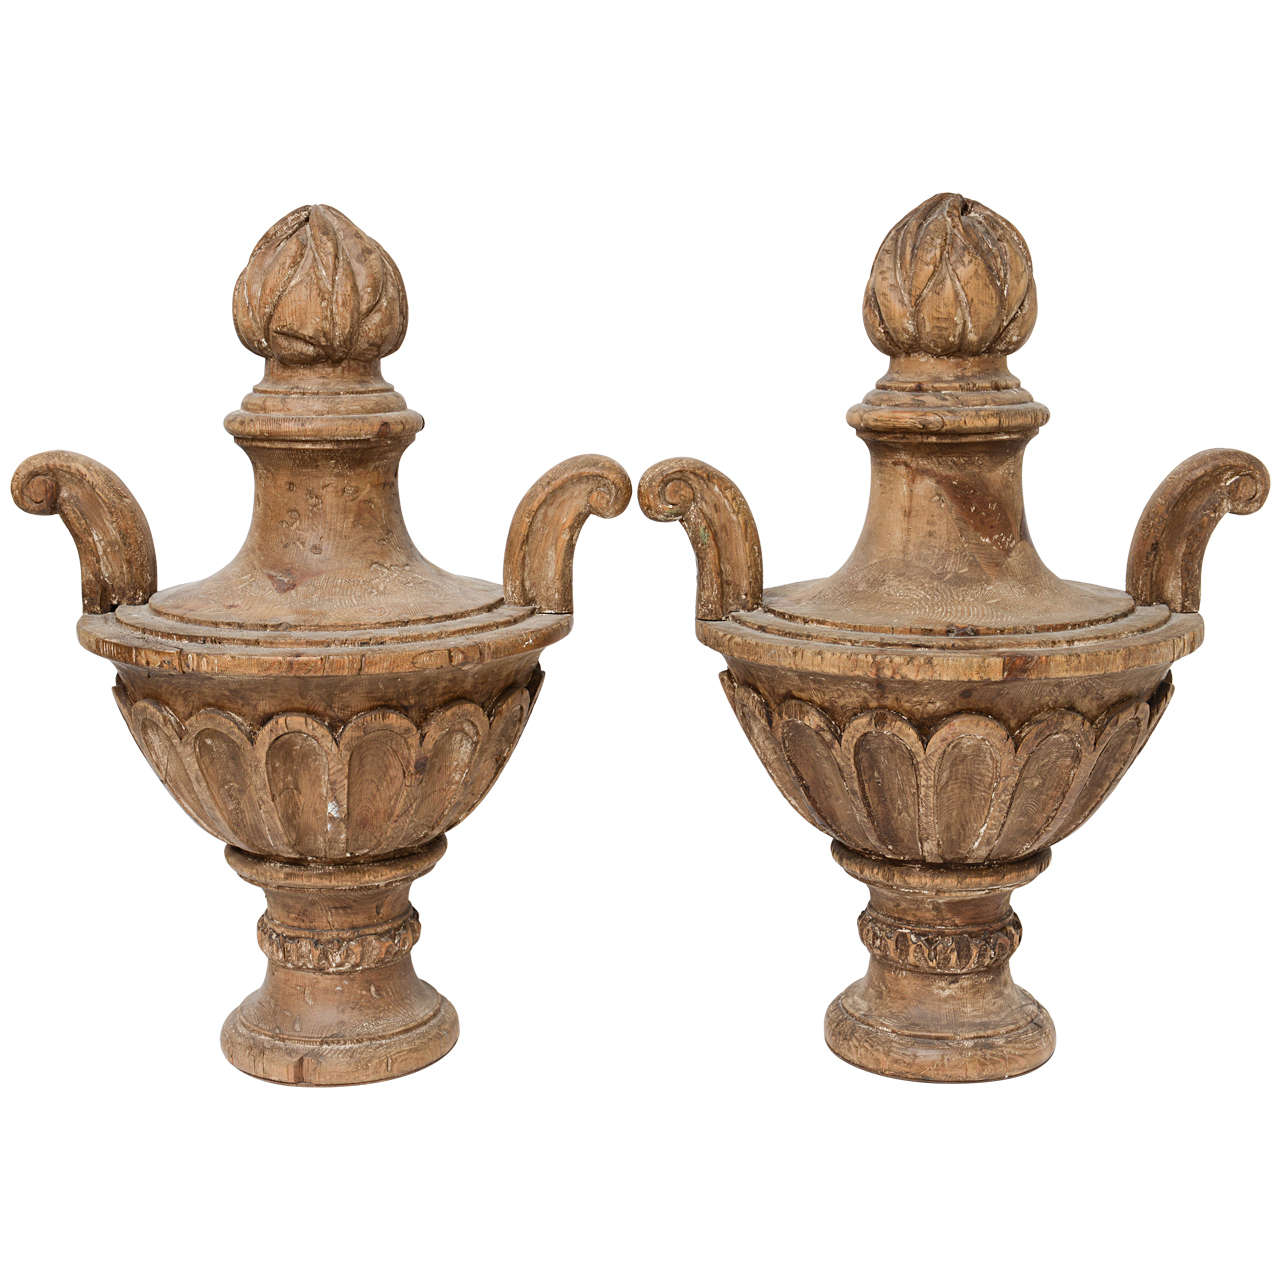 pair of 19th century carved wood finials at 1stdibs